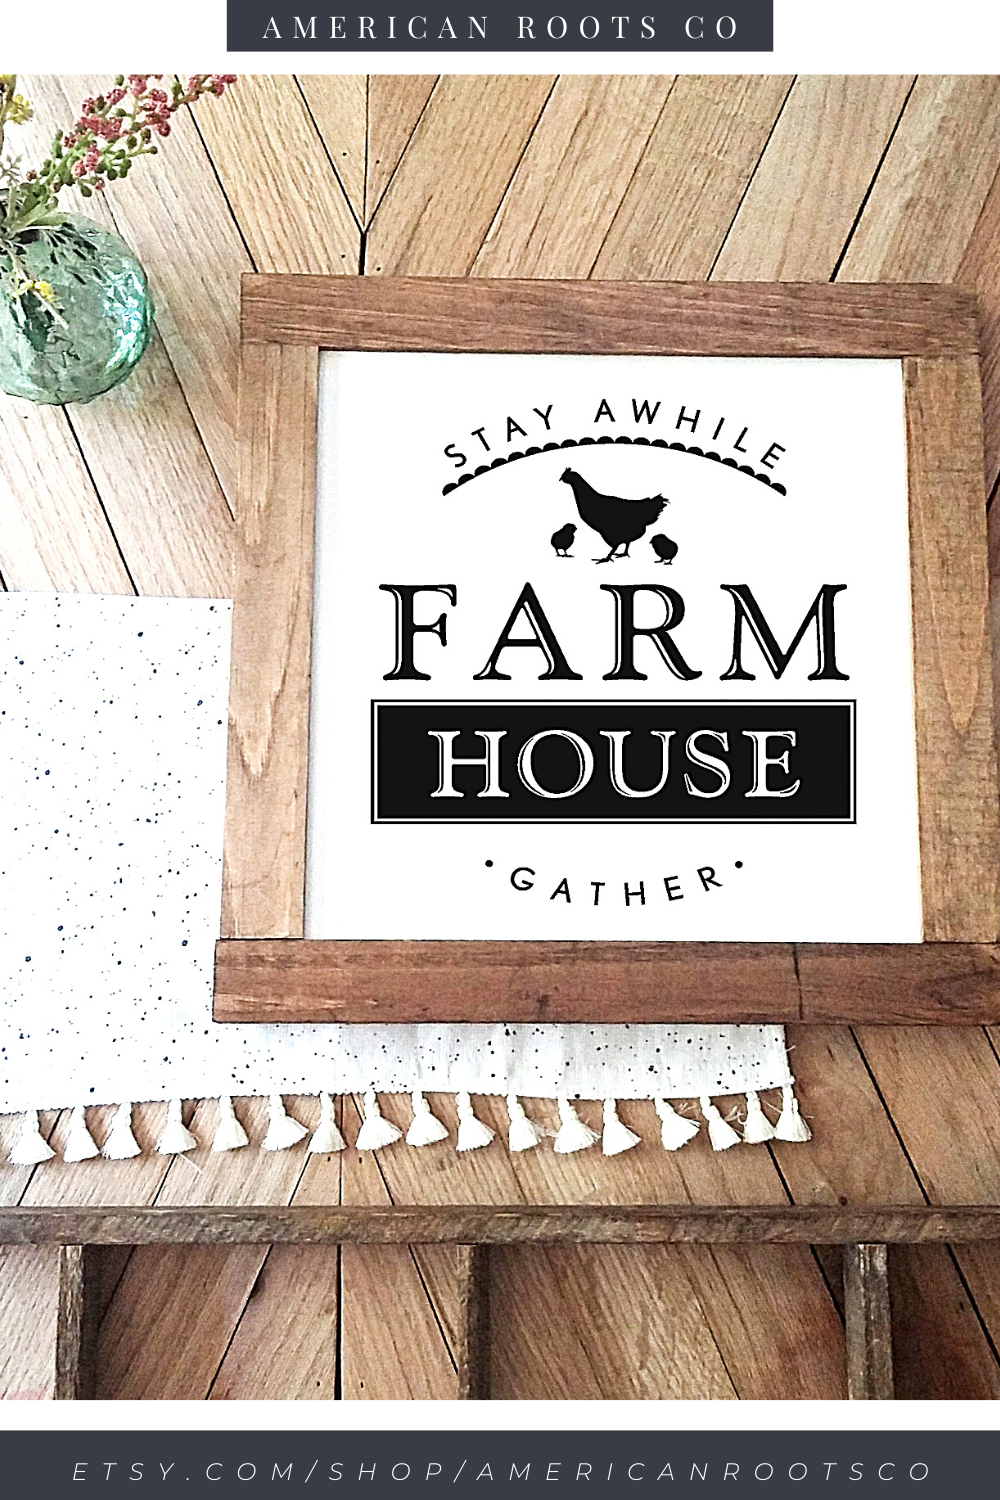 Shop American Roots Co on Etsy for your our Farmhouse stay awhile gather wood sign. All of our farmhouse wall decor is made to order - handcrafted from start to finish! Get 10% off your first order. #Farmhousesign #woodsigns #walldecor #etsy #americanrootsco